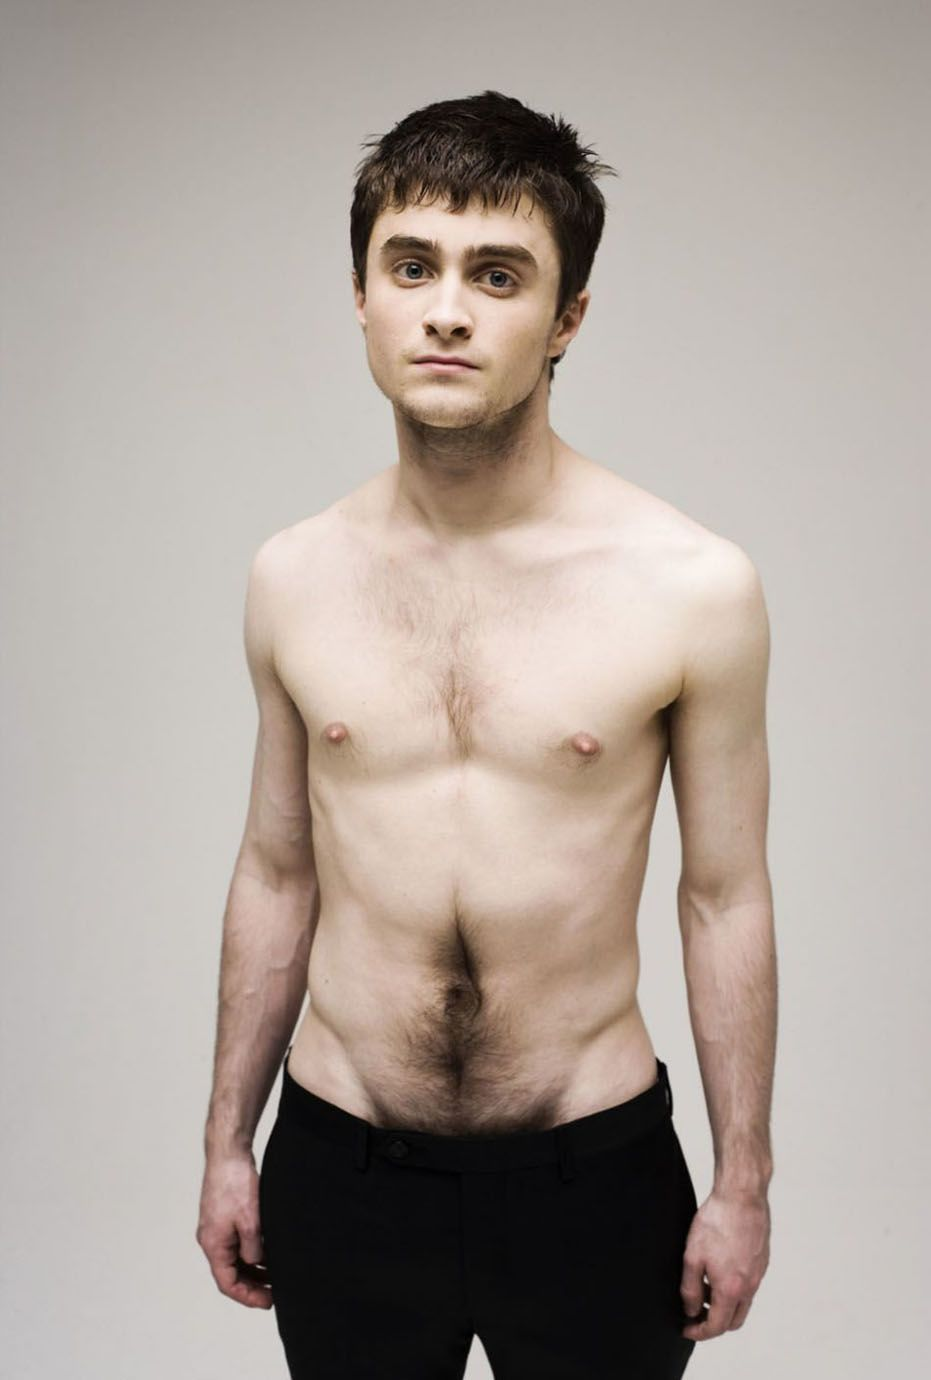 Daniel radcliffe all nude and underwear photos naked male celebrities